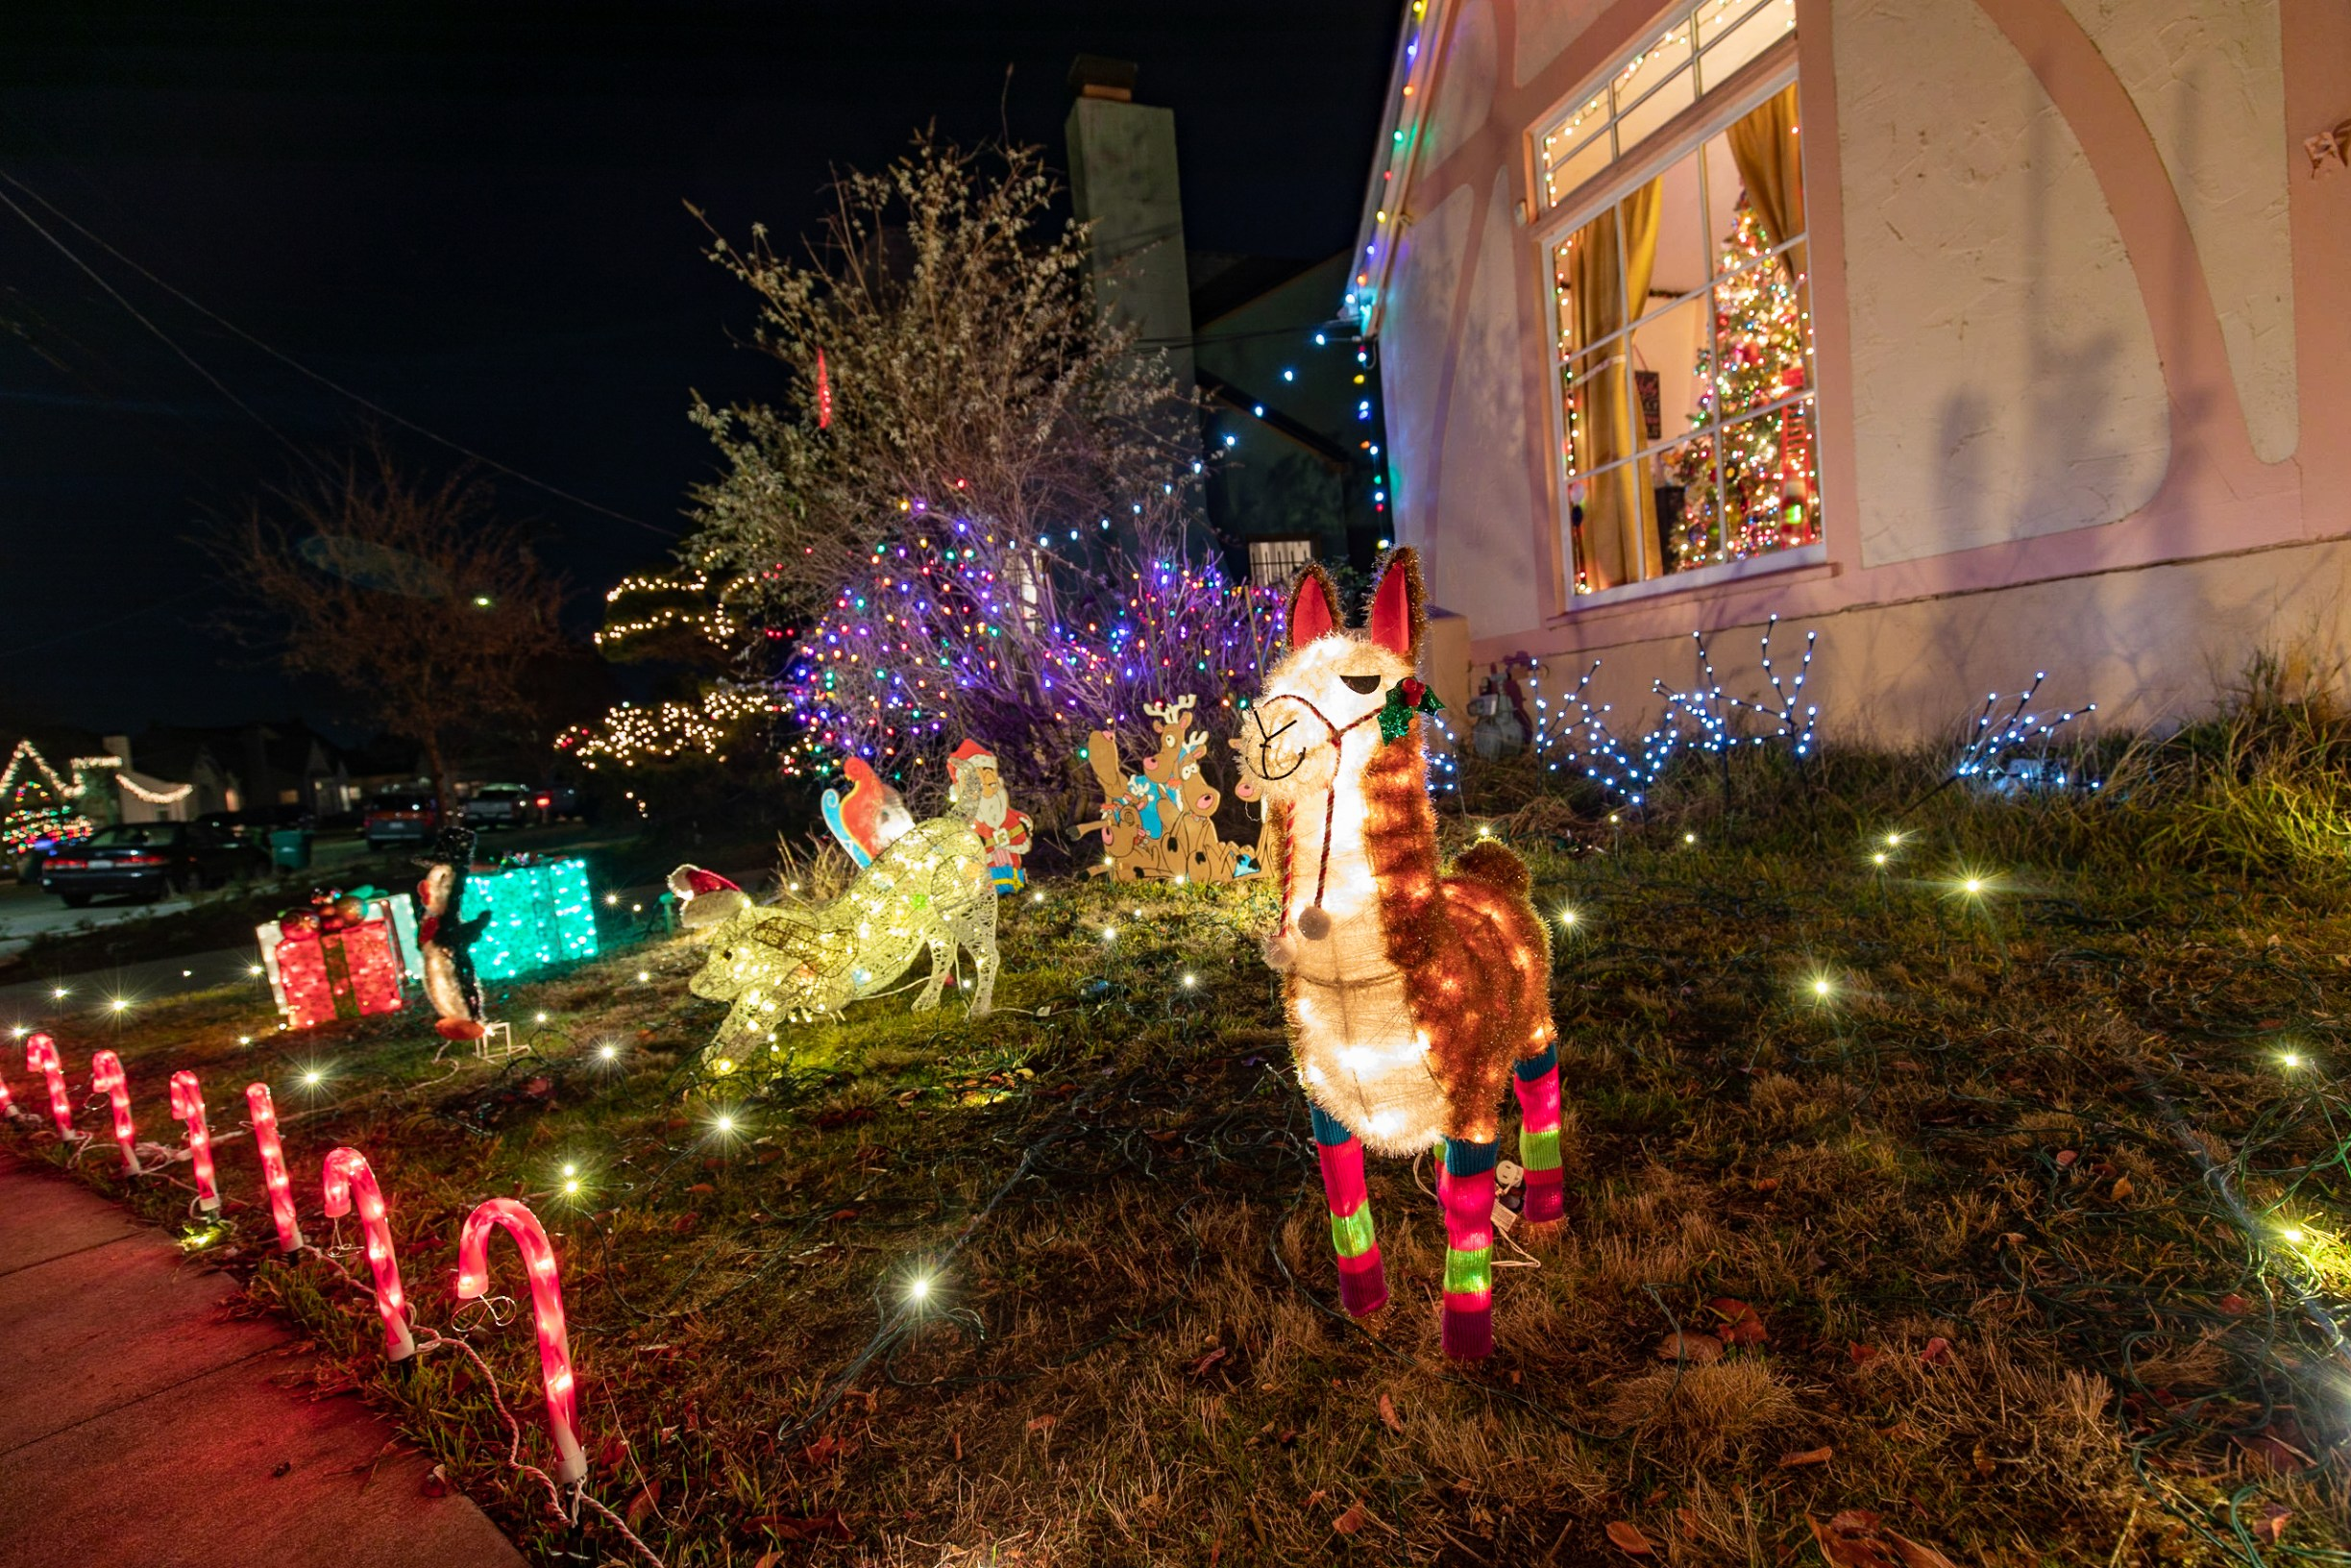 Christmas decorations covering the house and lawns of Picardy Drive residents.